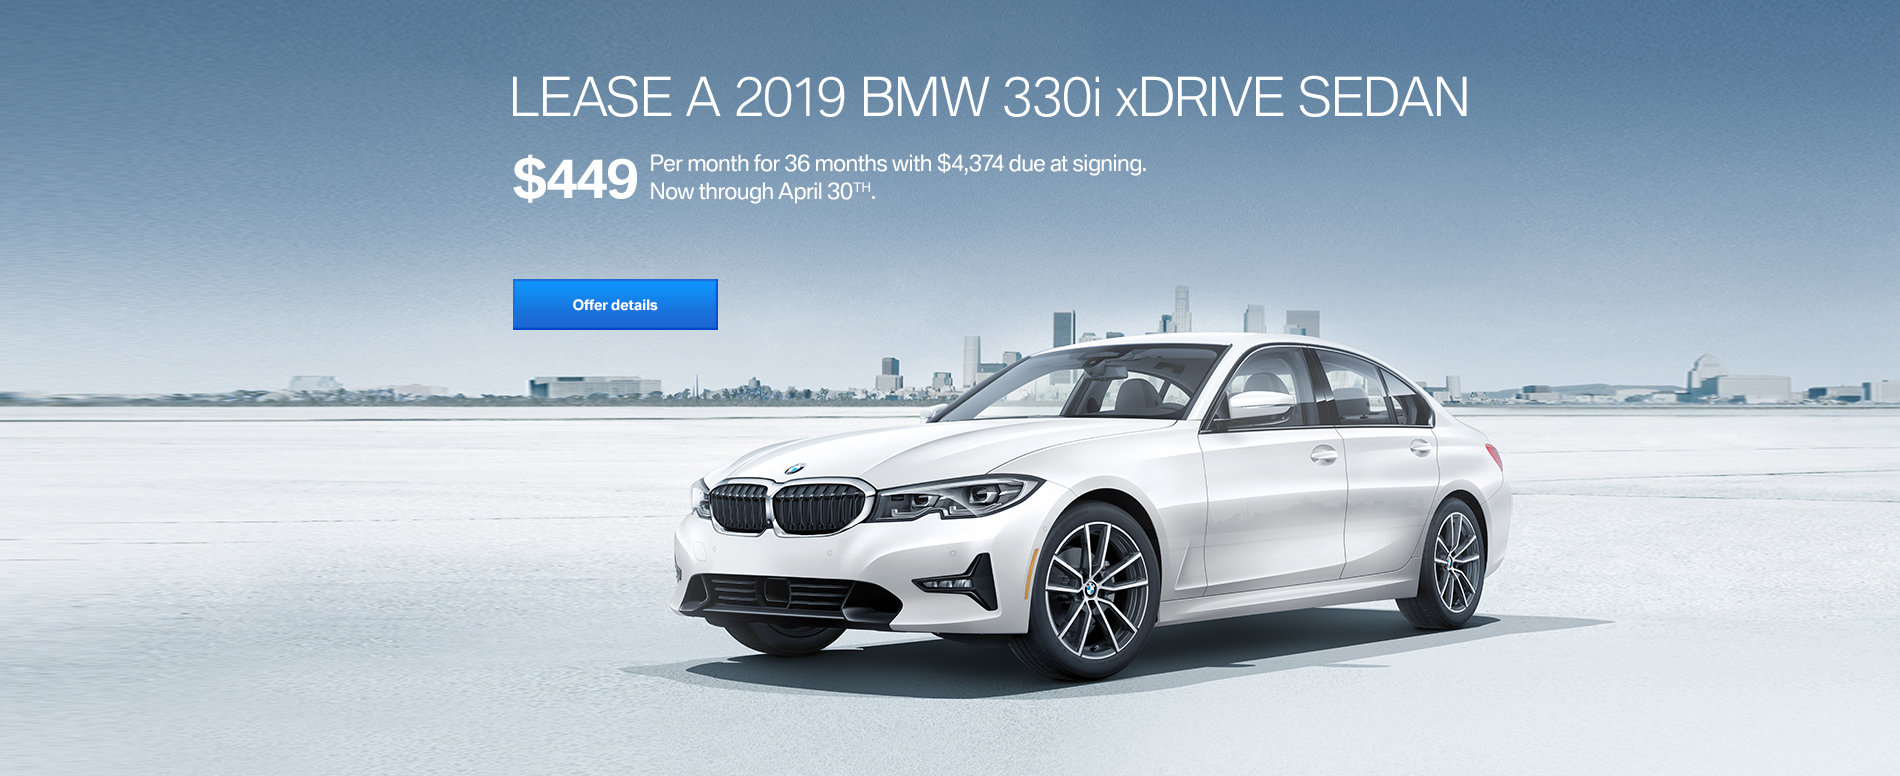 LEASE A 2019 BMW 330i xDRIVE FOR $449/MONTH FOR 36 MONTHS WITH $